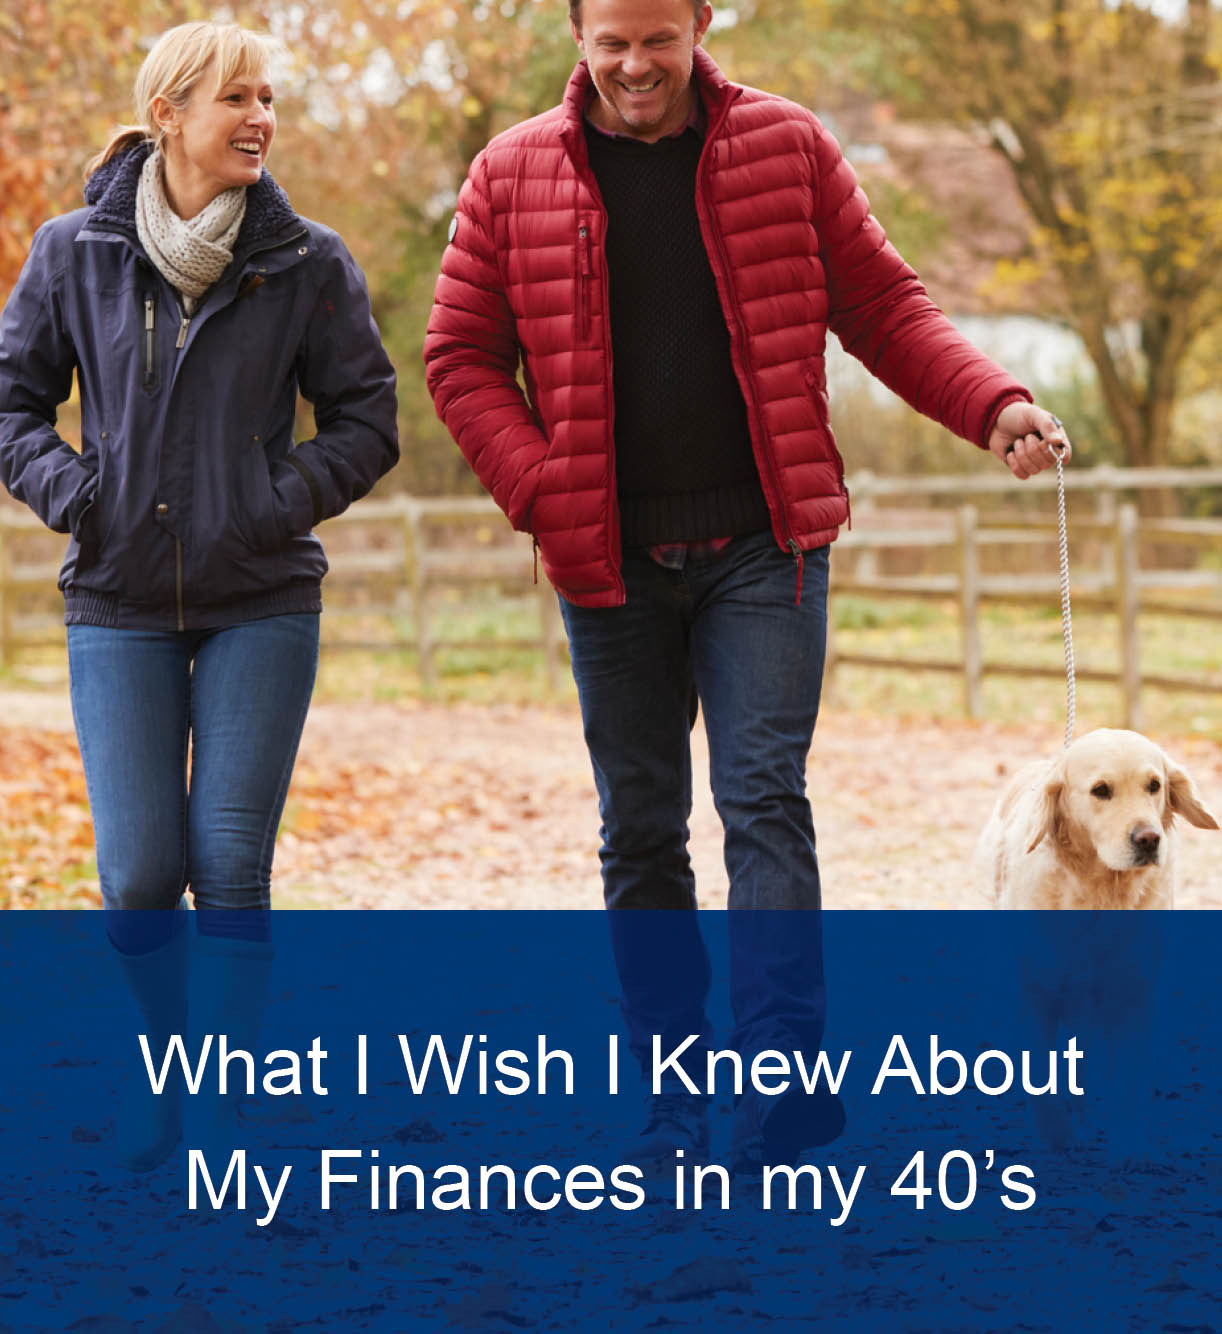 What I Wish I Knew About My Finances in My 40s